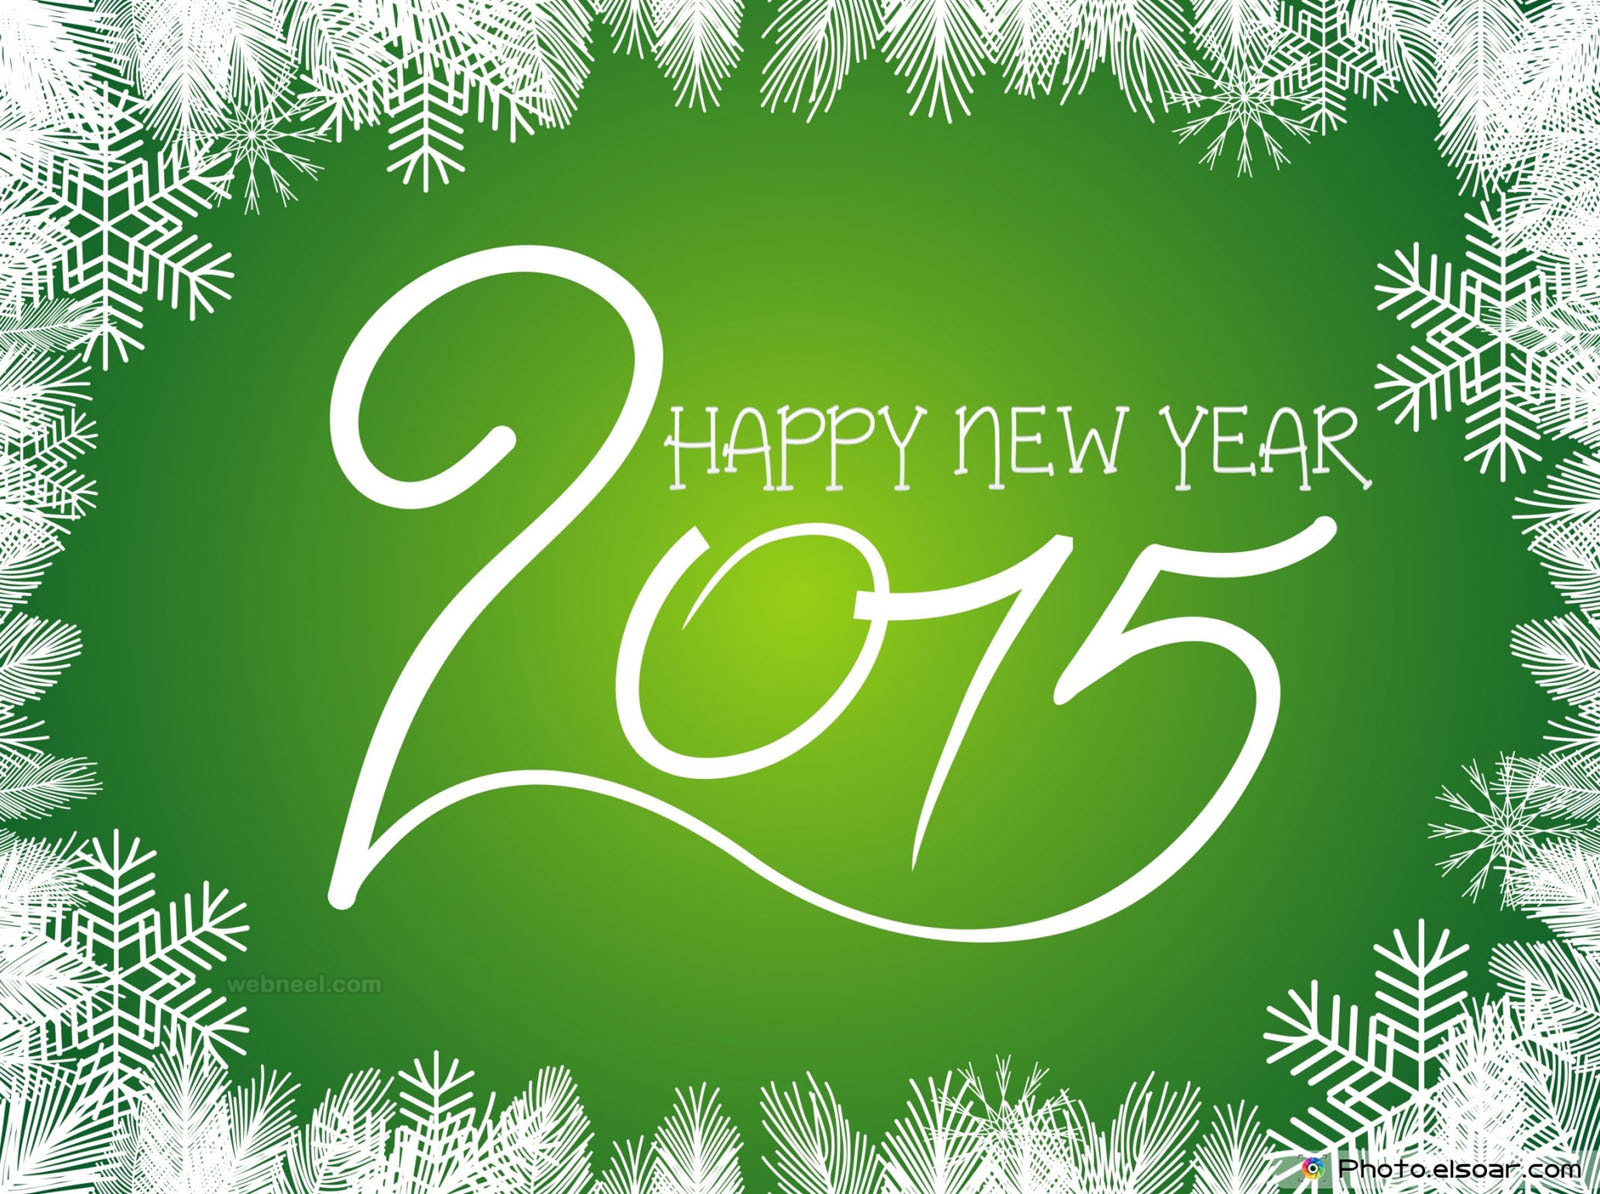 New Year Greeting Card Design 2015 17